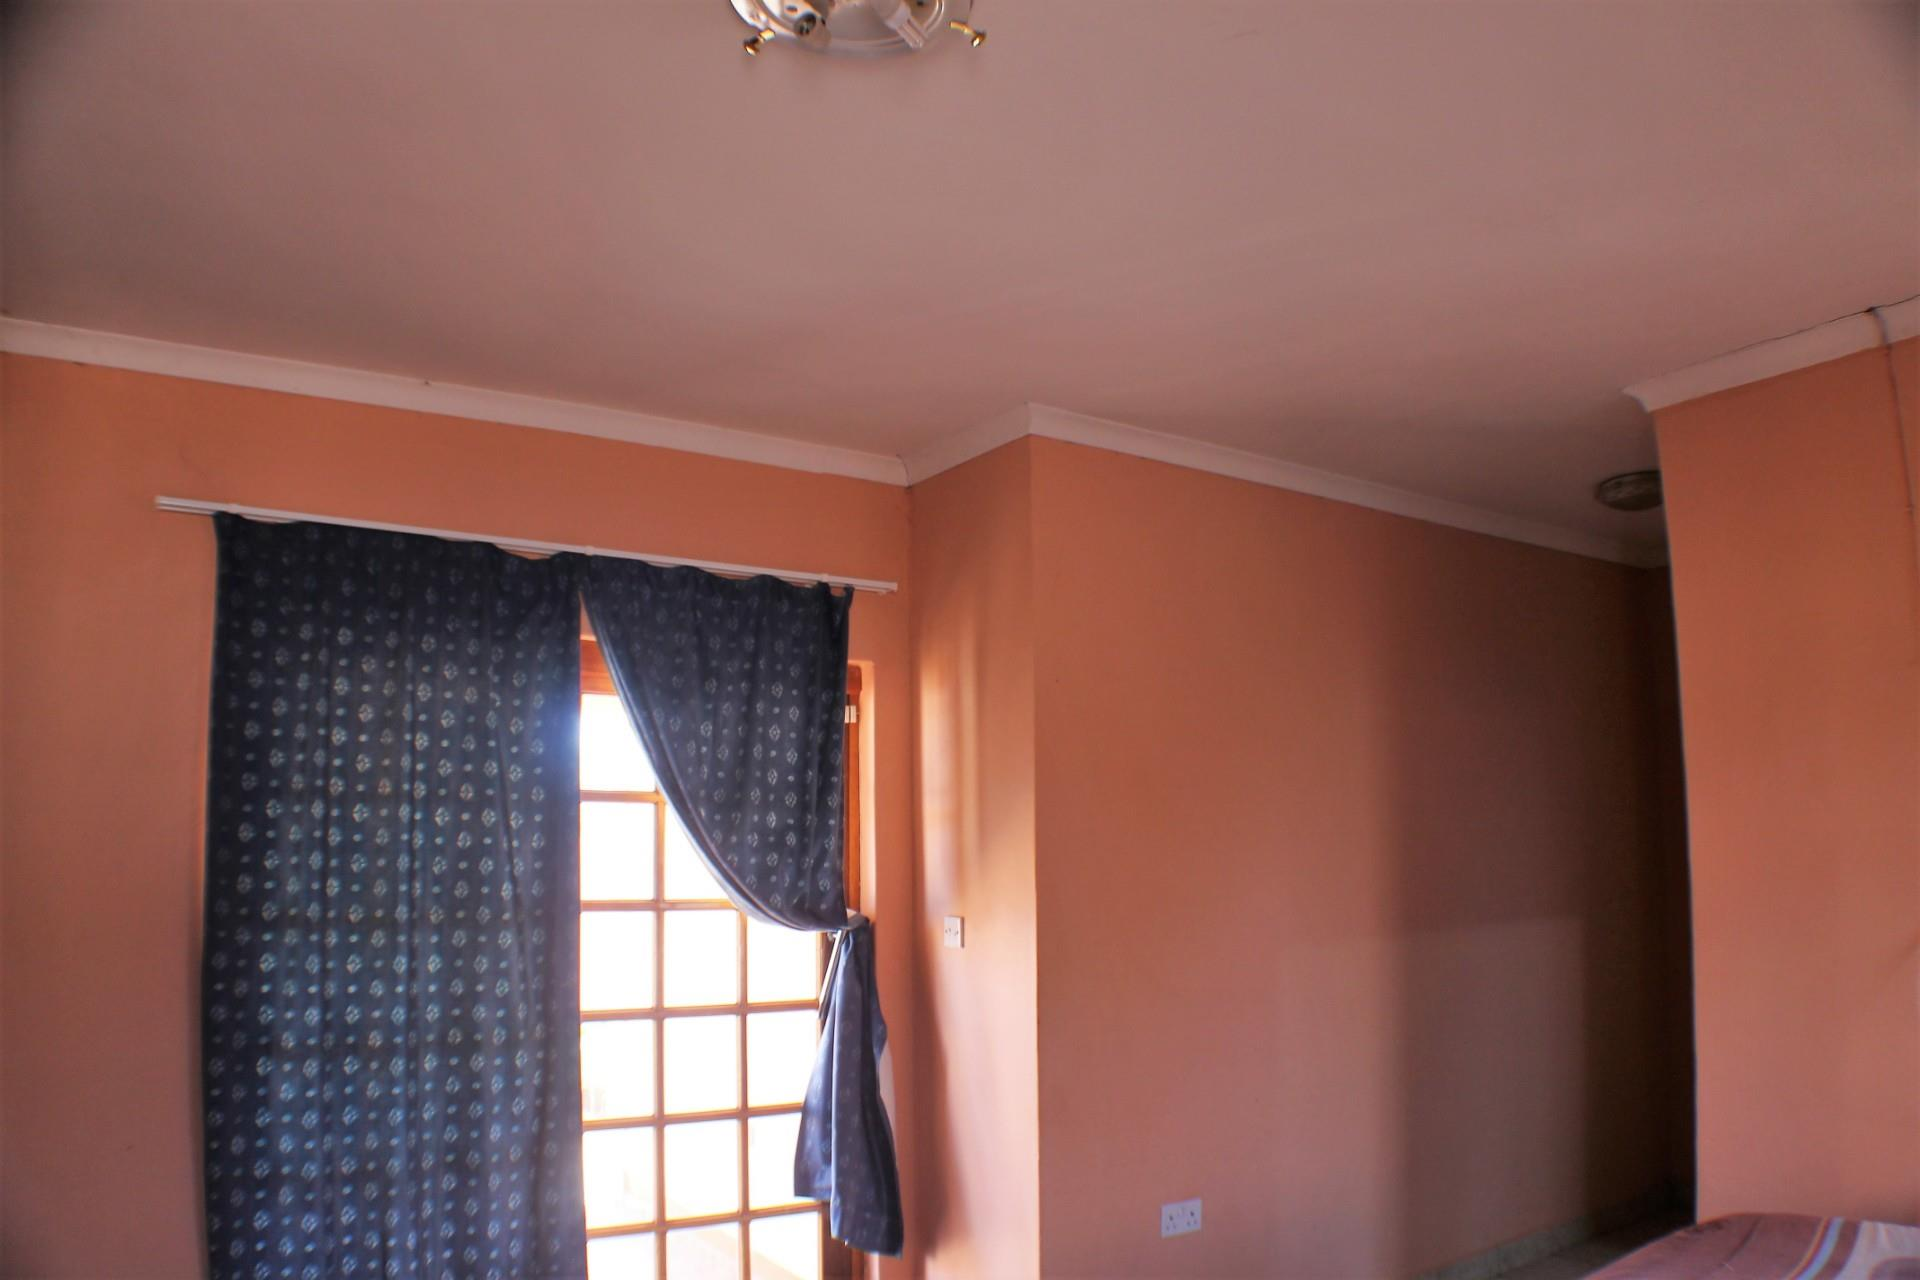 2 Bedroom House For Sale in Block 7